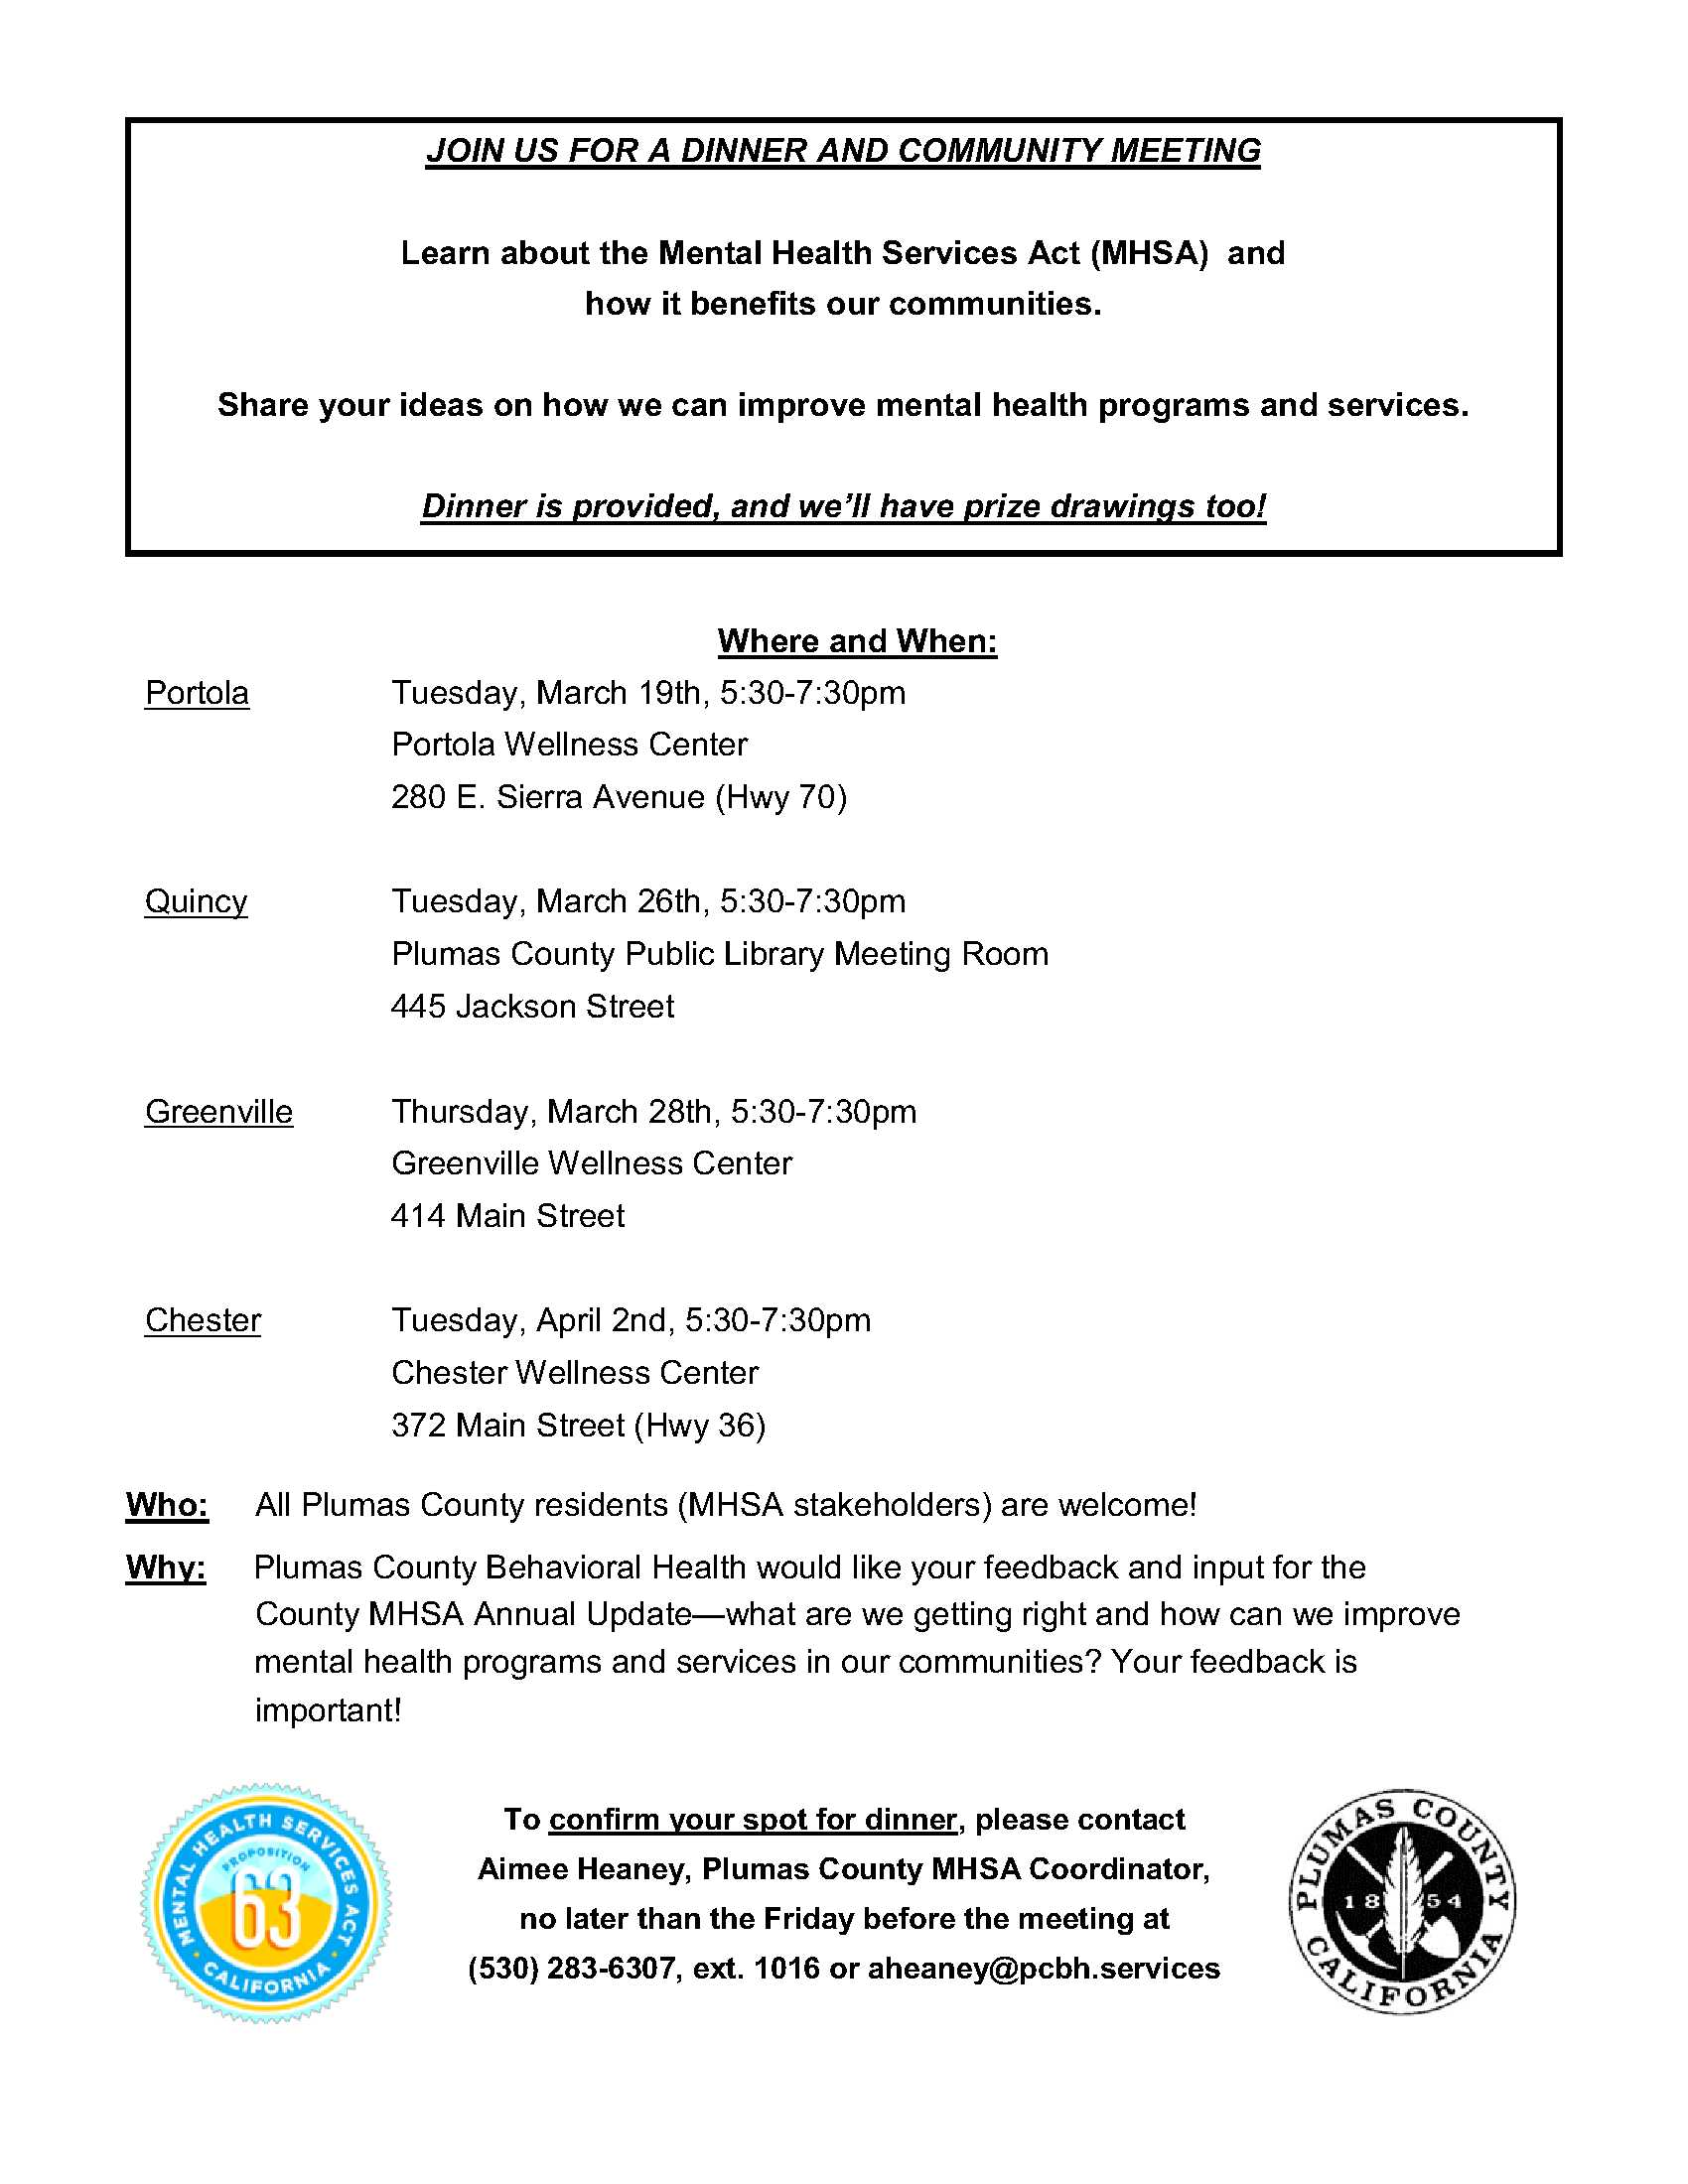 2019 All County MHSA Stakeholder Meetings Flyer.jpg